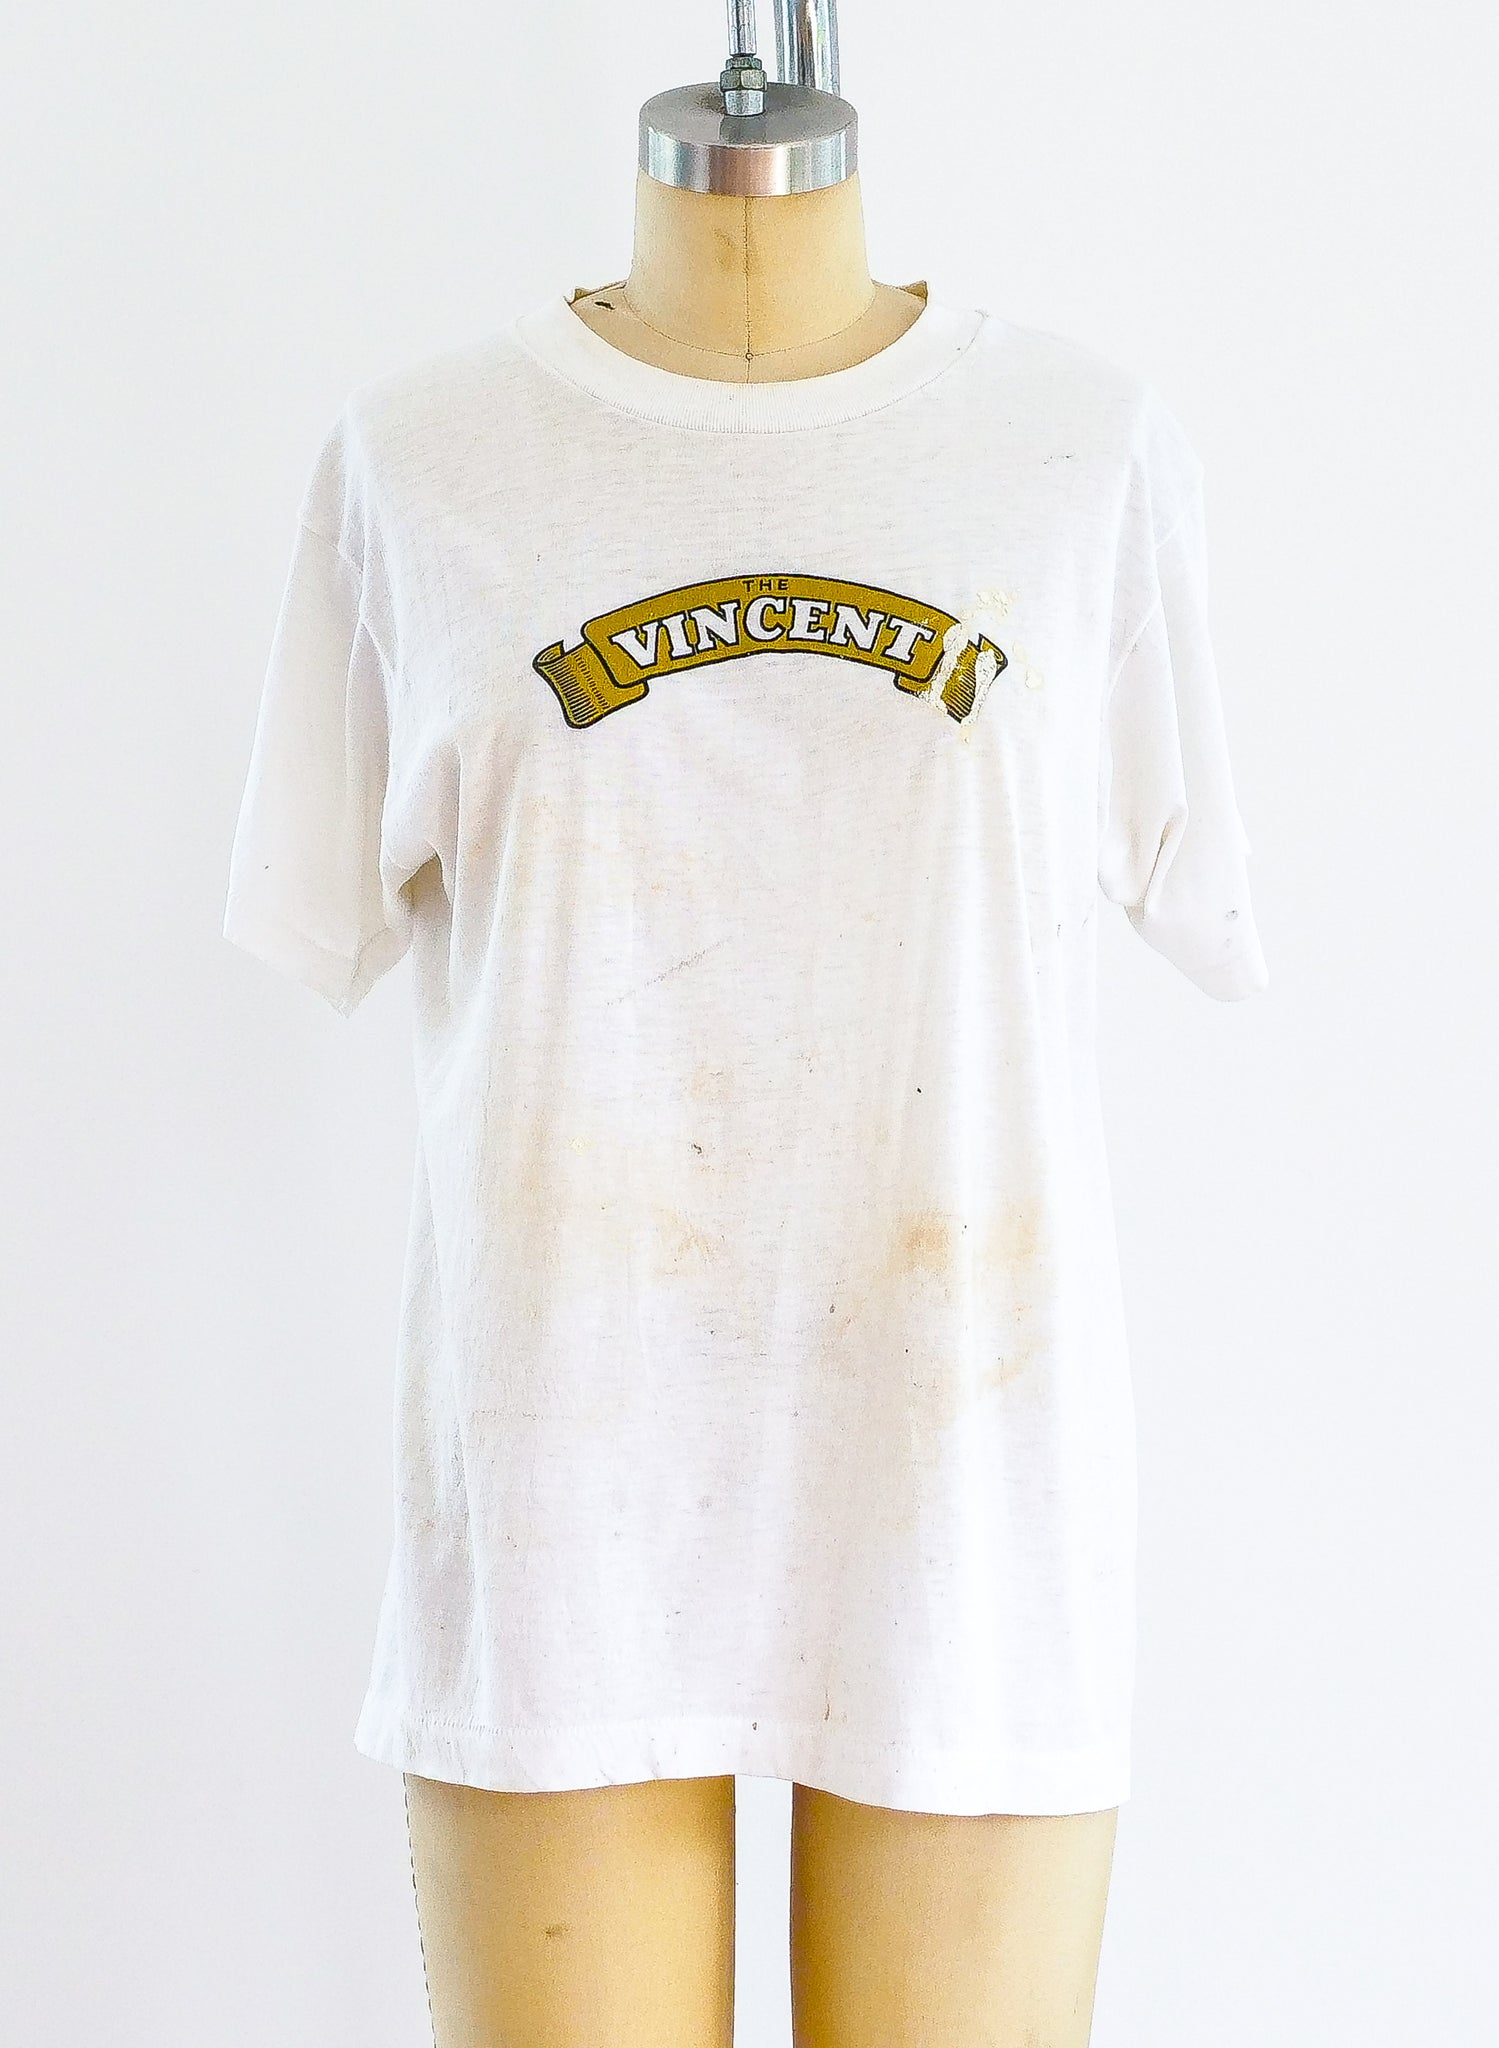 The Vincent Motorcycle Logo Tee